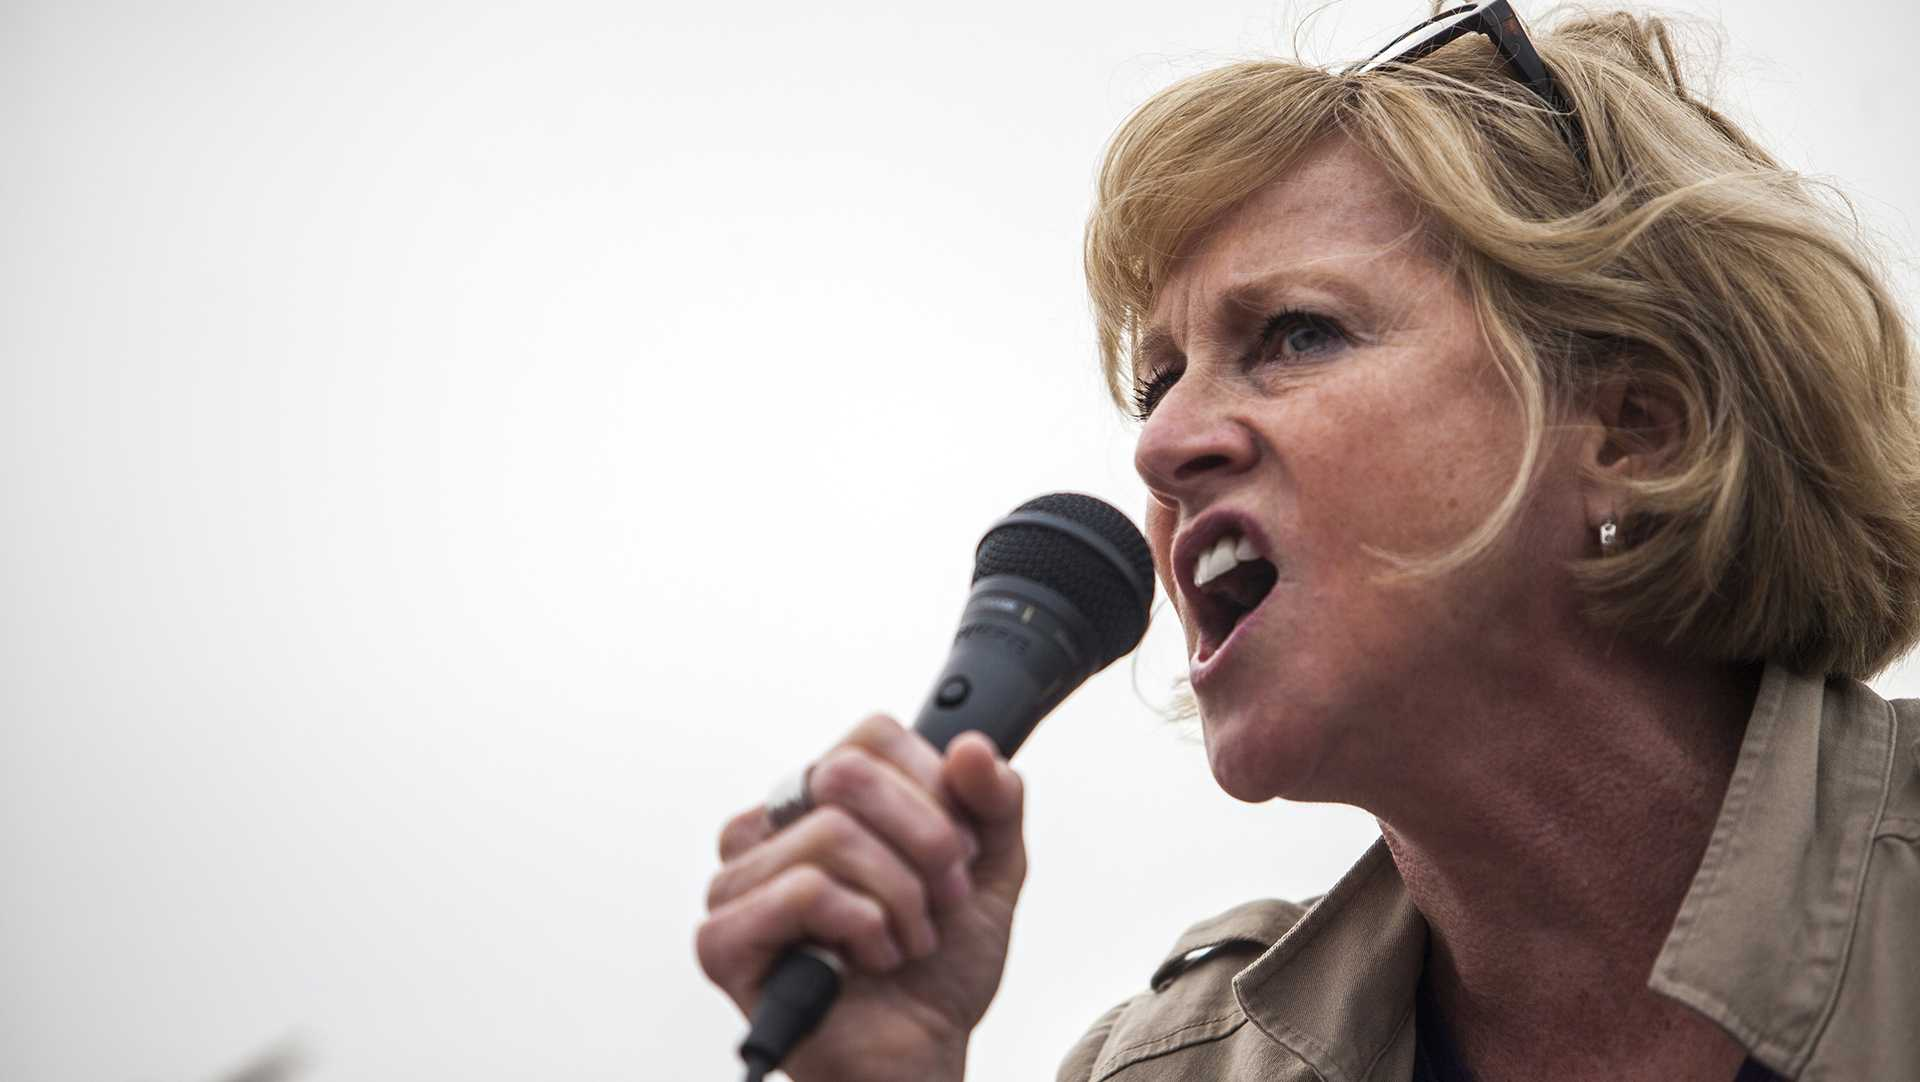 Gubernatorial candidate and SEIU Local 199 President, Cathy Glasson, speaks to a crowd during a Labour Walkout event in Des Moines on Monday, Sept. 4, 2017. Organizations in support of laborers across Iowa such as Service Employees International Union, Iowa Citizens for Community Improvement, and Democratic Socialists of America participated in the rally. (Ben Smith/The Daily Iowan)